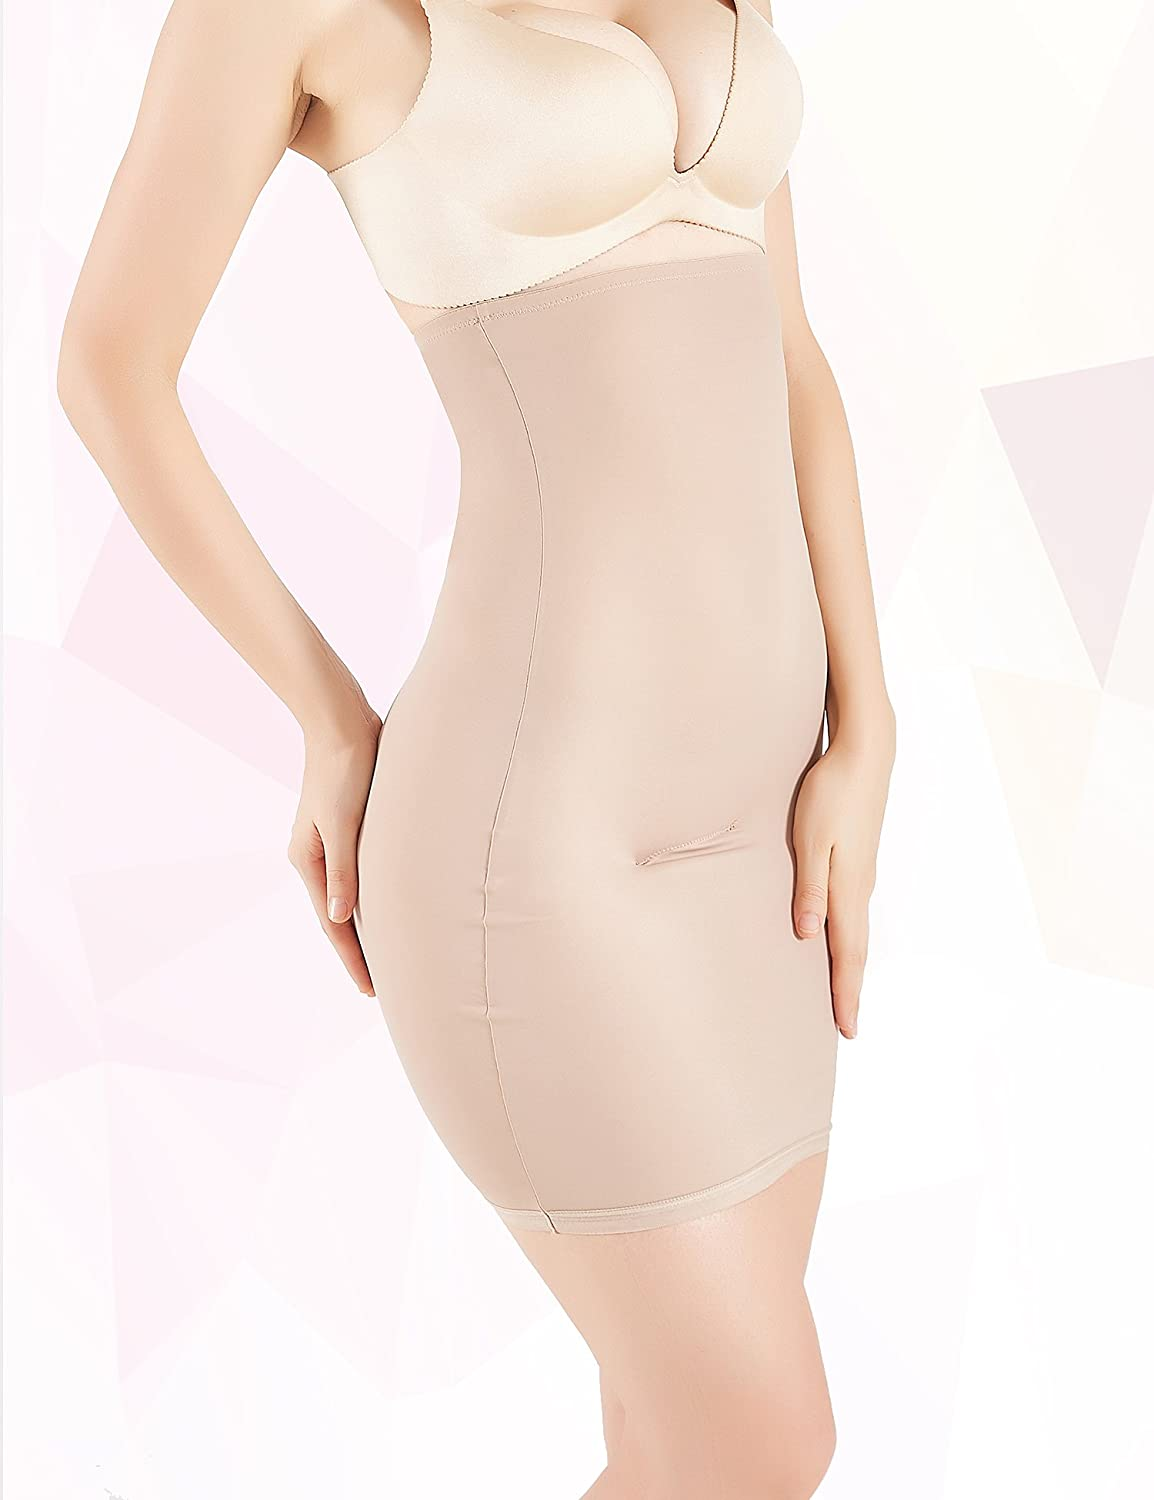 1a159d315a MUKATU Women s Invisible High Waist Shaping Panty Slimming Control Skirt  Firm Tummy Control Half Slip Shapewear for Under Dresses